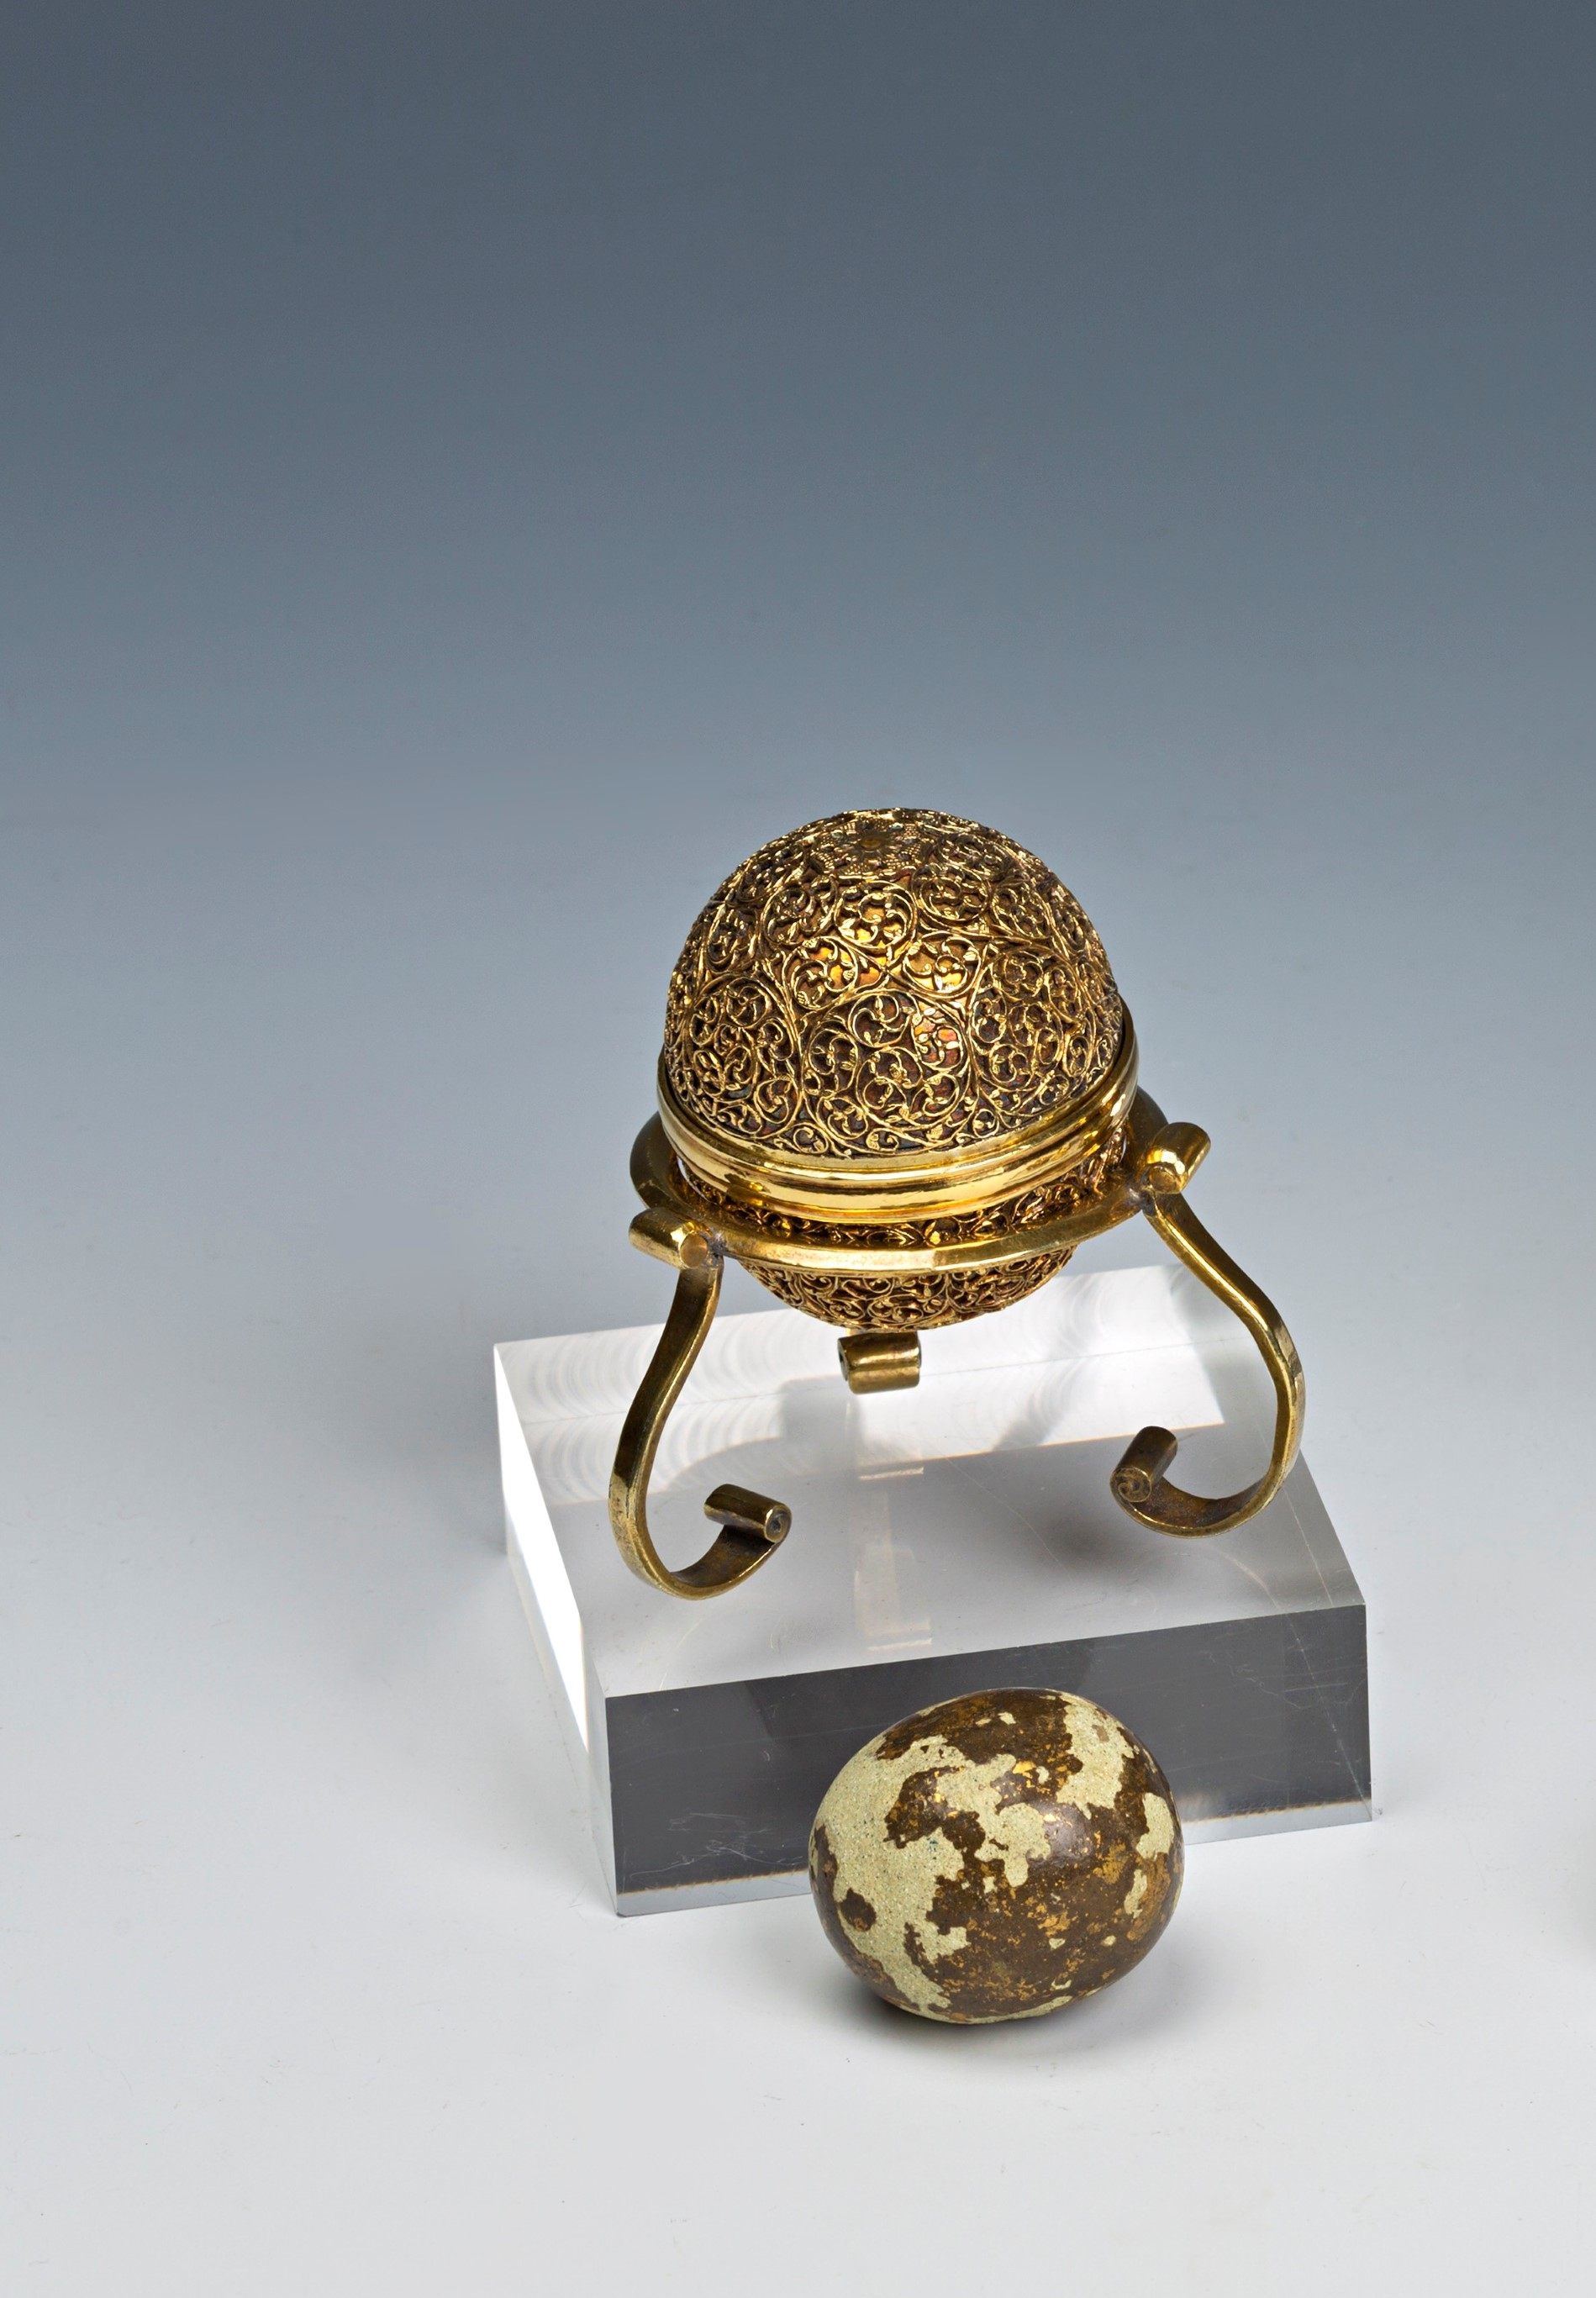 A goa stone holder, 17th Century.